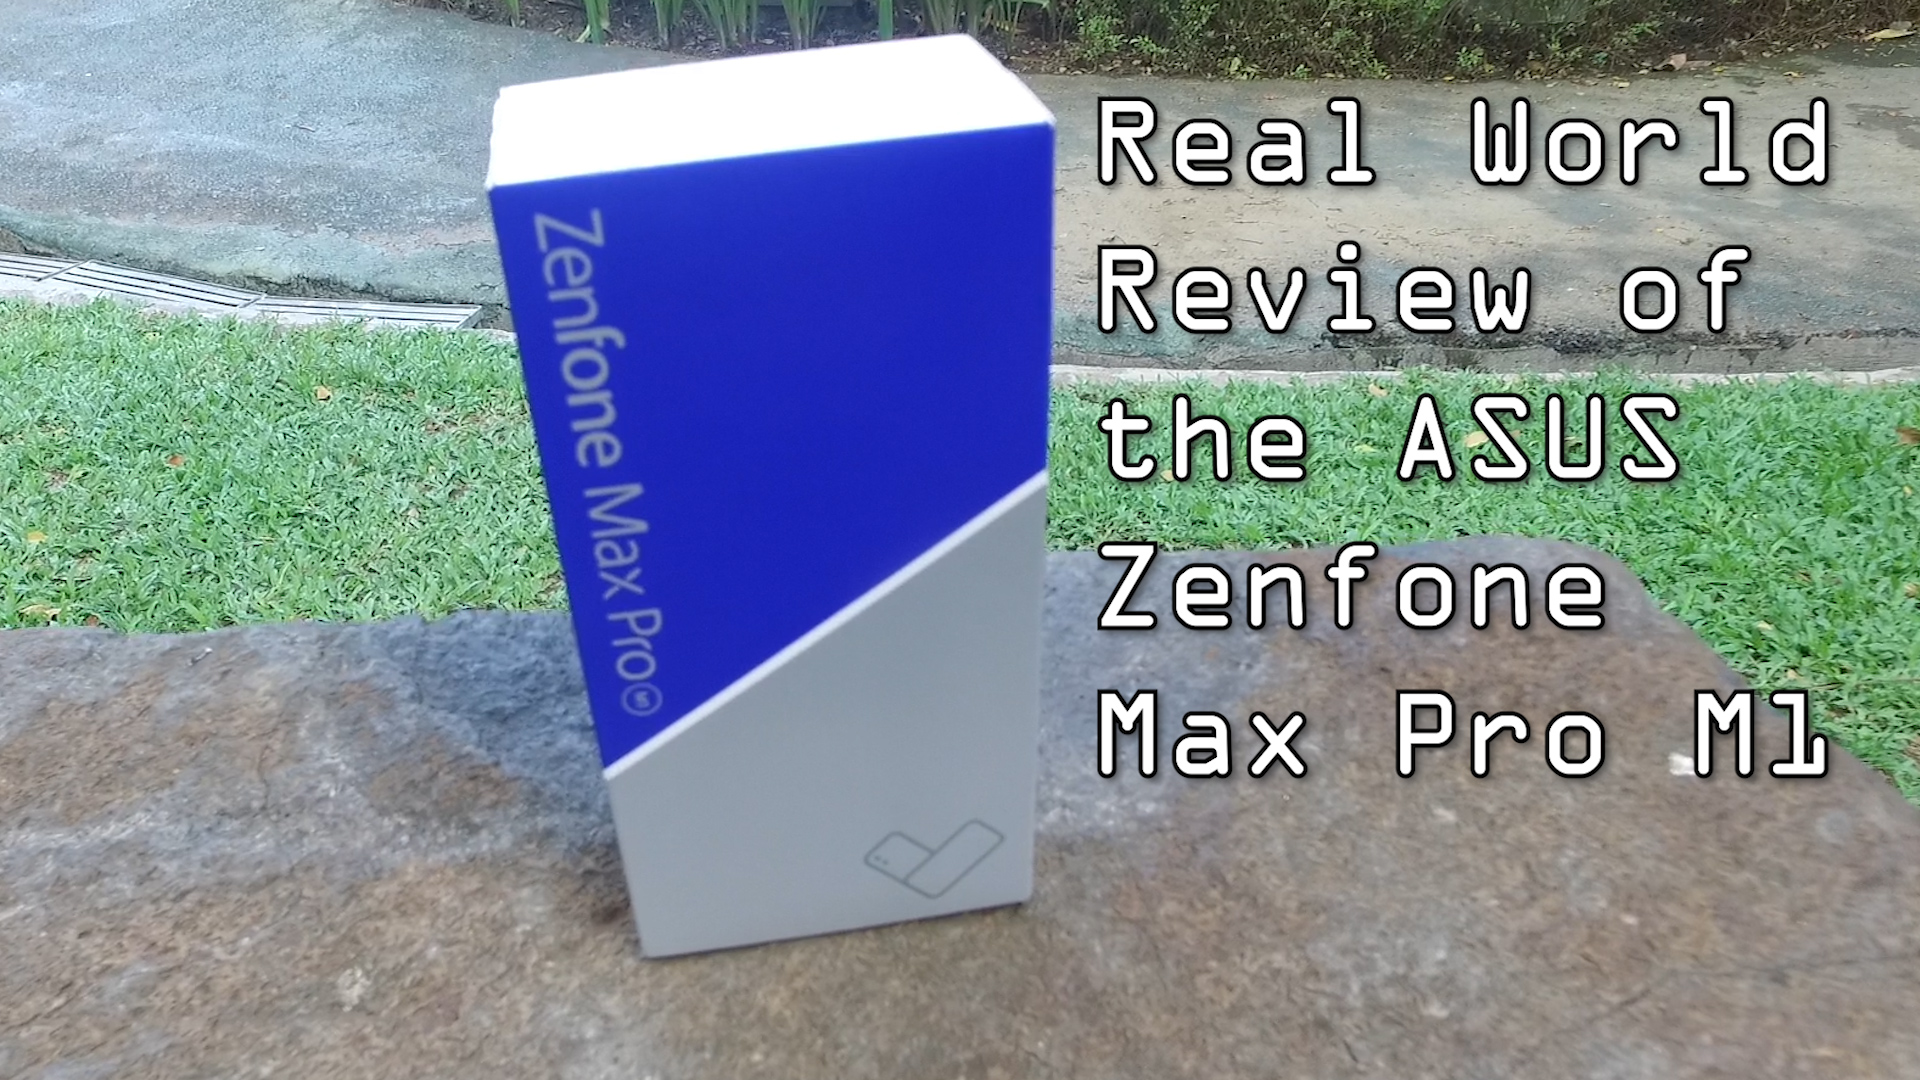 ASUS Zenfone Max Pro M1 Real World Review